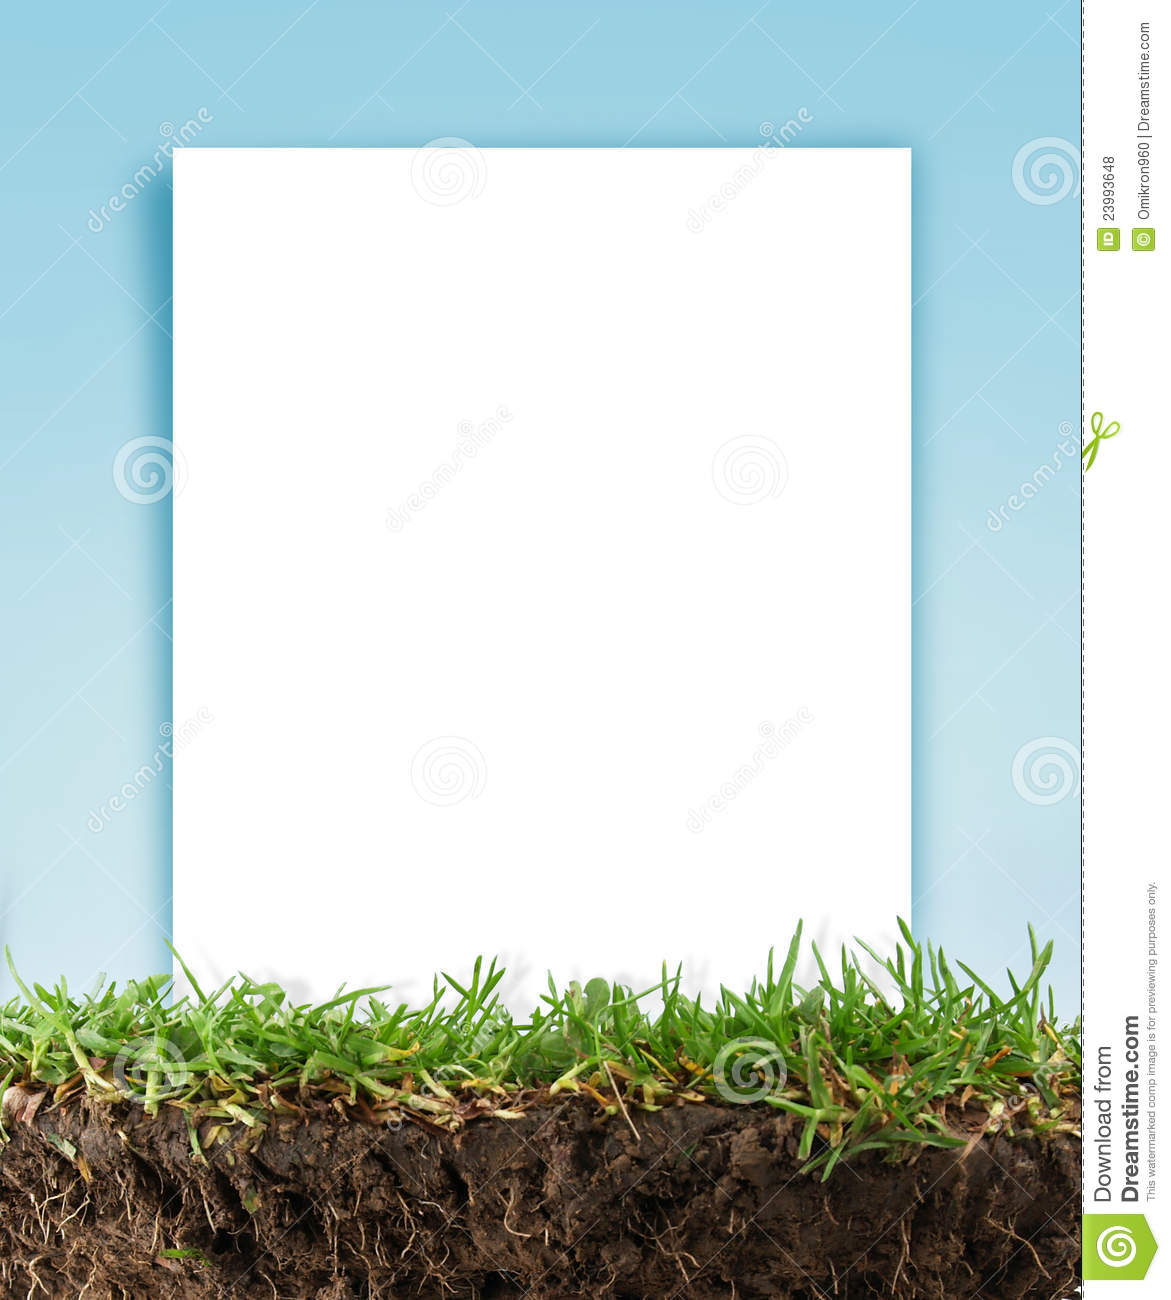 Paper frame in the grass stock photo. Image of send, letter - 23993648